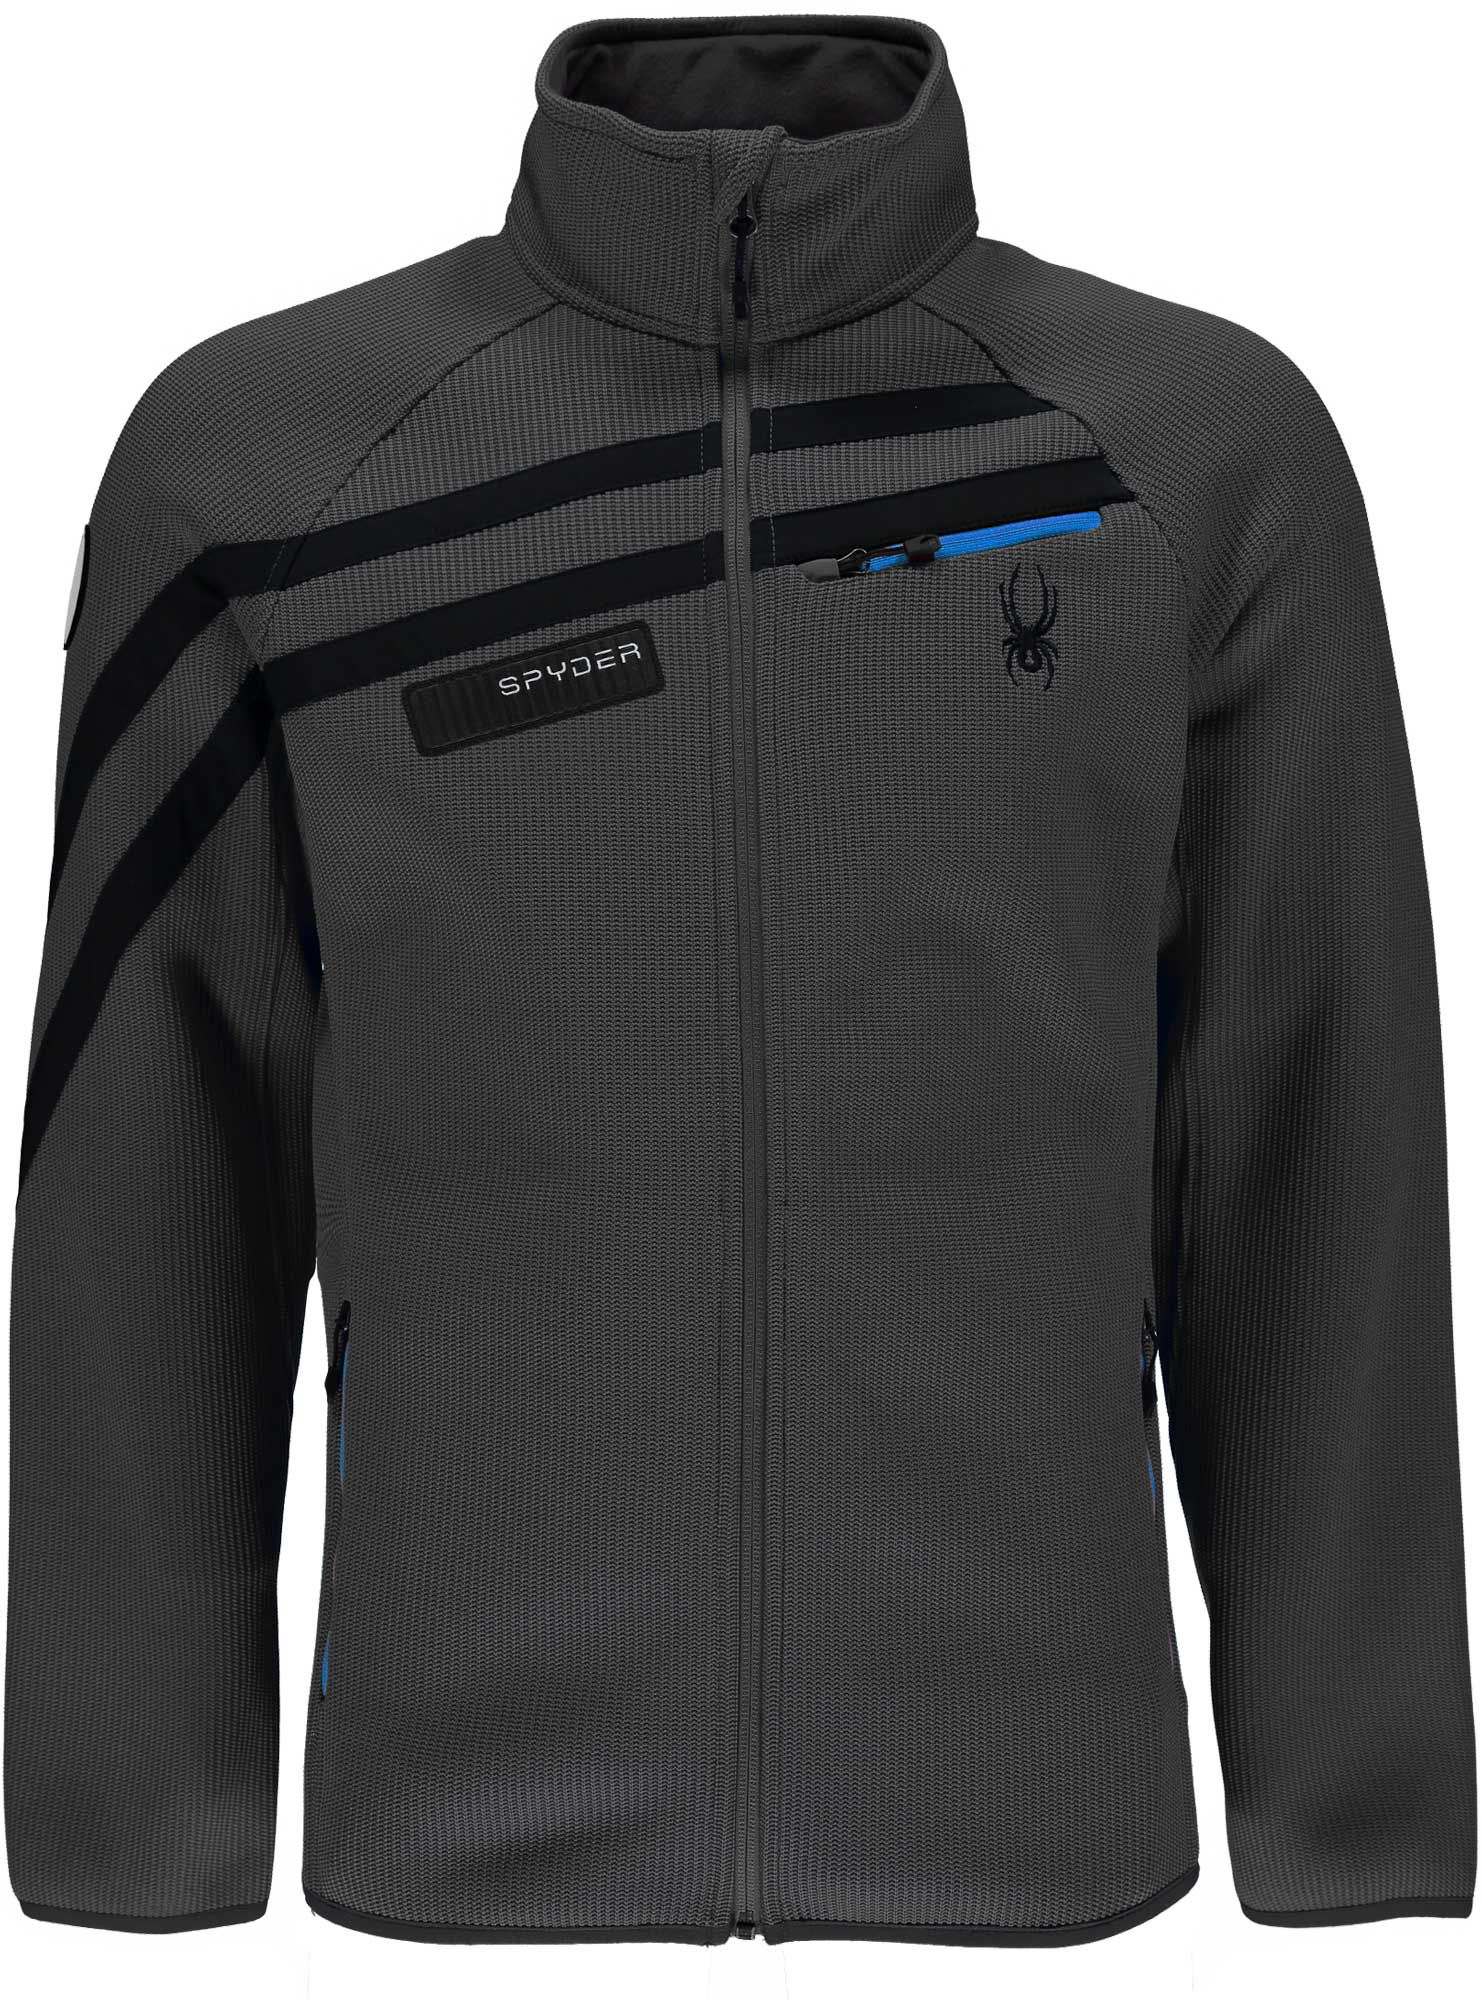 Spyder men's alps fleece jacket